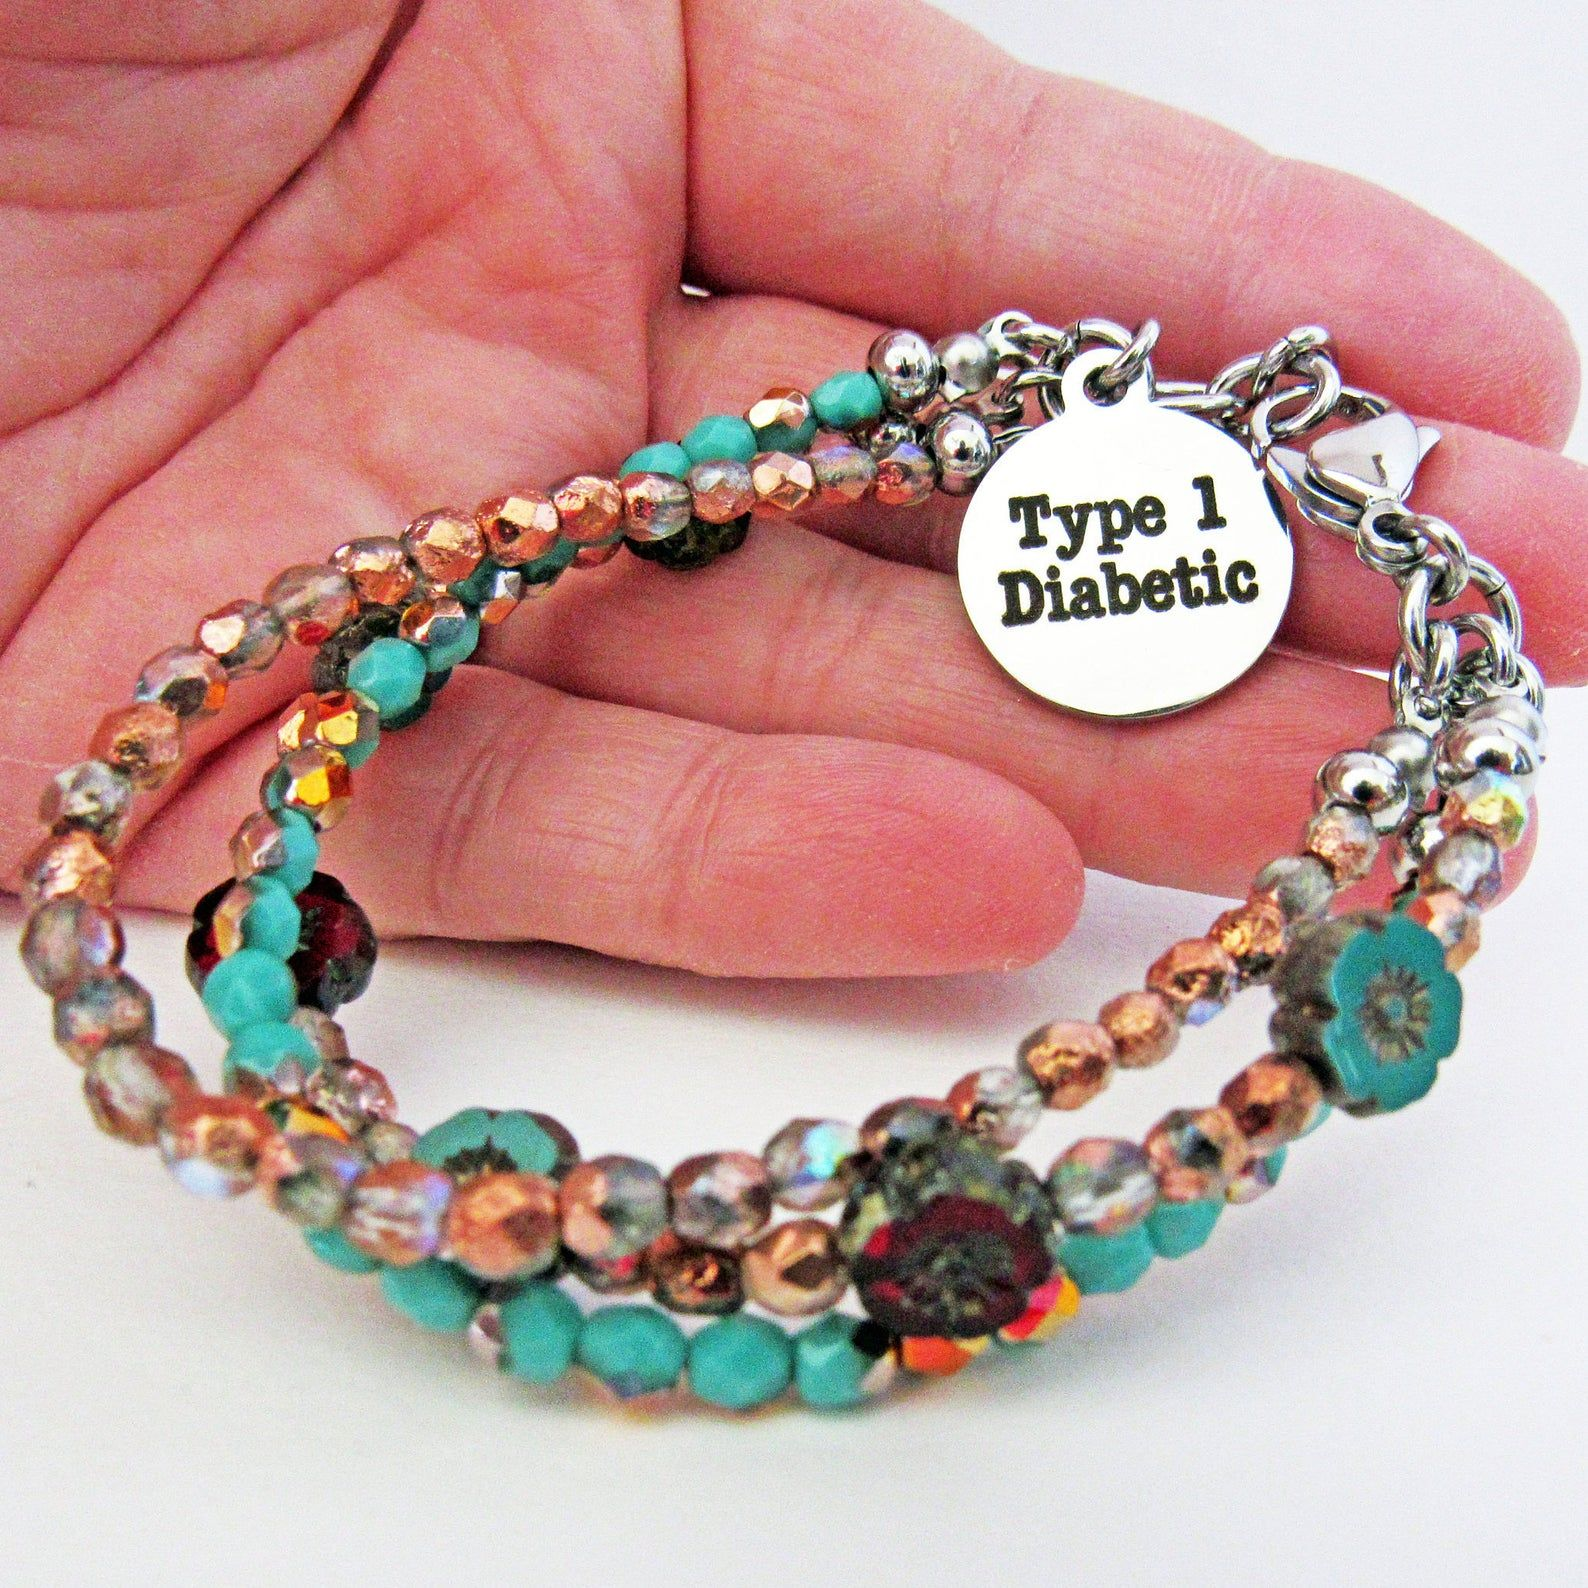 Type 1 Diabetic Medical Alert Id Bracelet Layered Stacking 3 Etsy In 2020 Diabetic Jewelry Layered Bracelets Blue And Copper